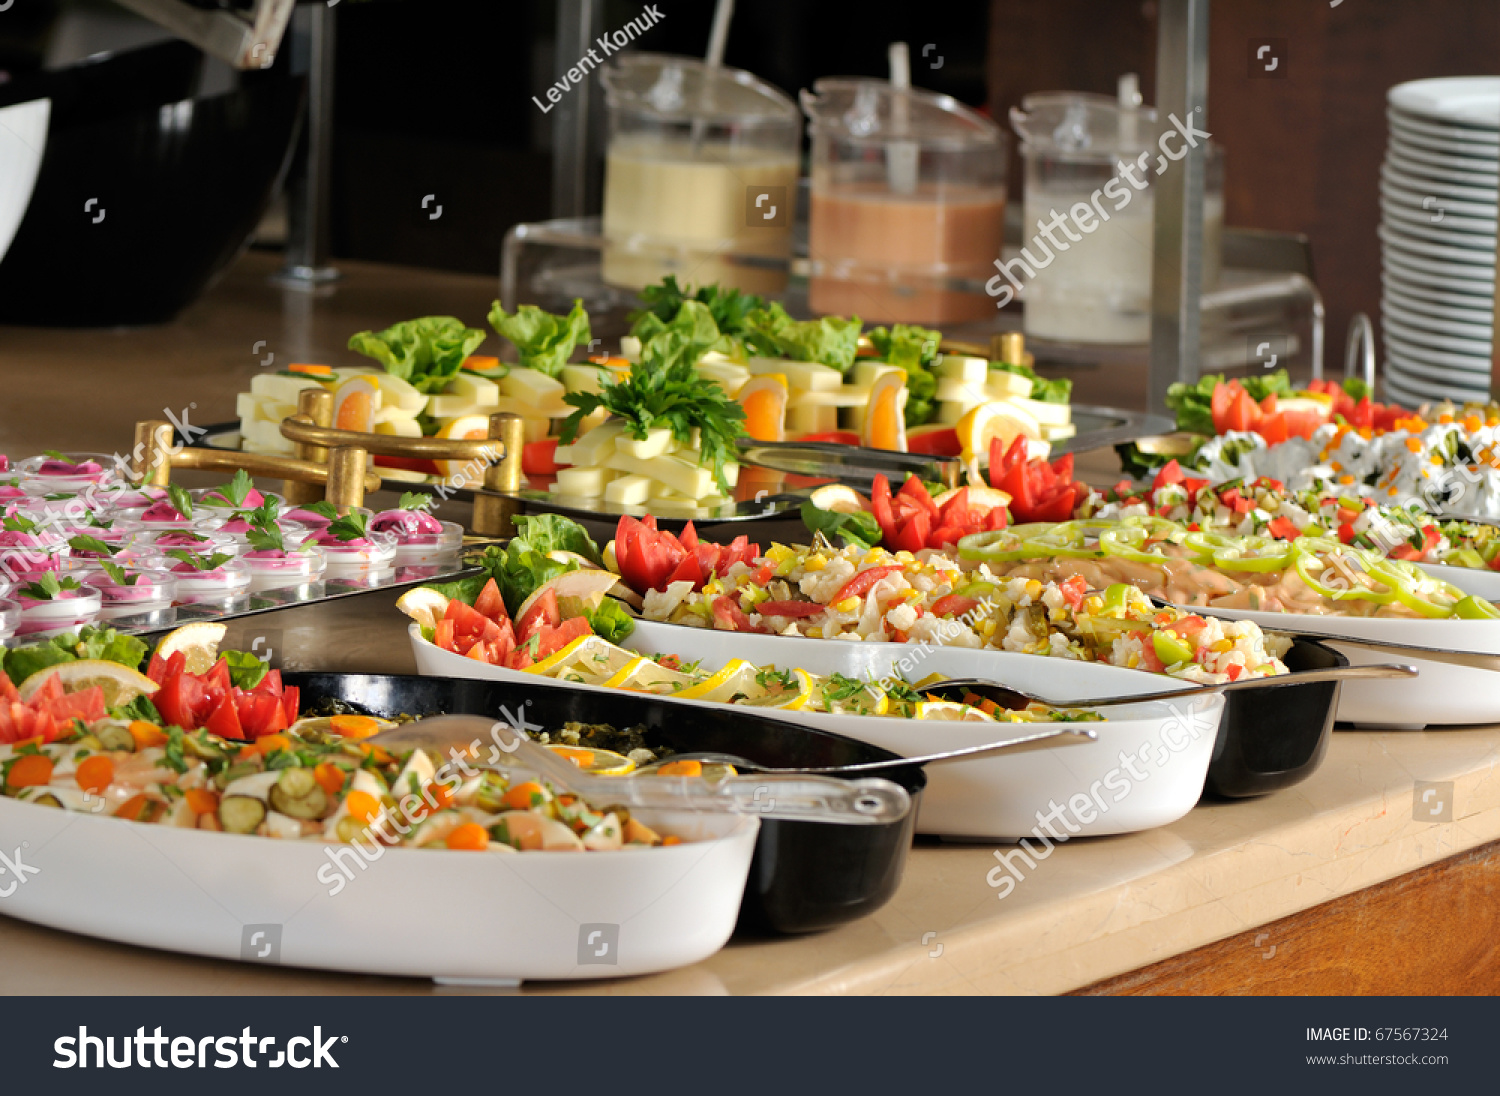 Catering Food At A Wedding Party - A Series Of Restaurant Images. Stock Photo 67567324 : Shutterstock